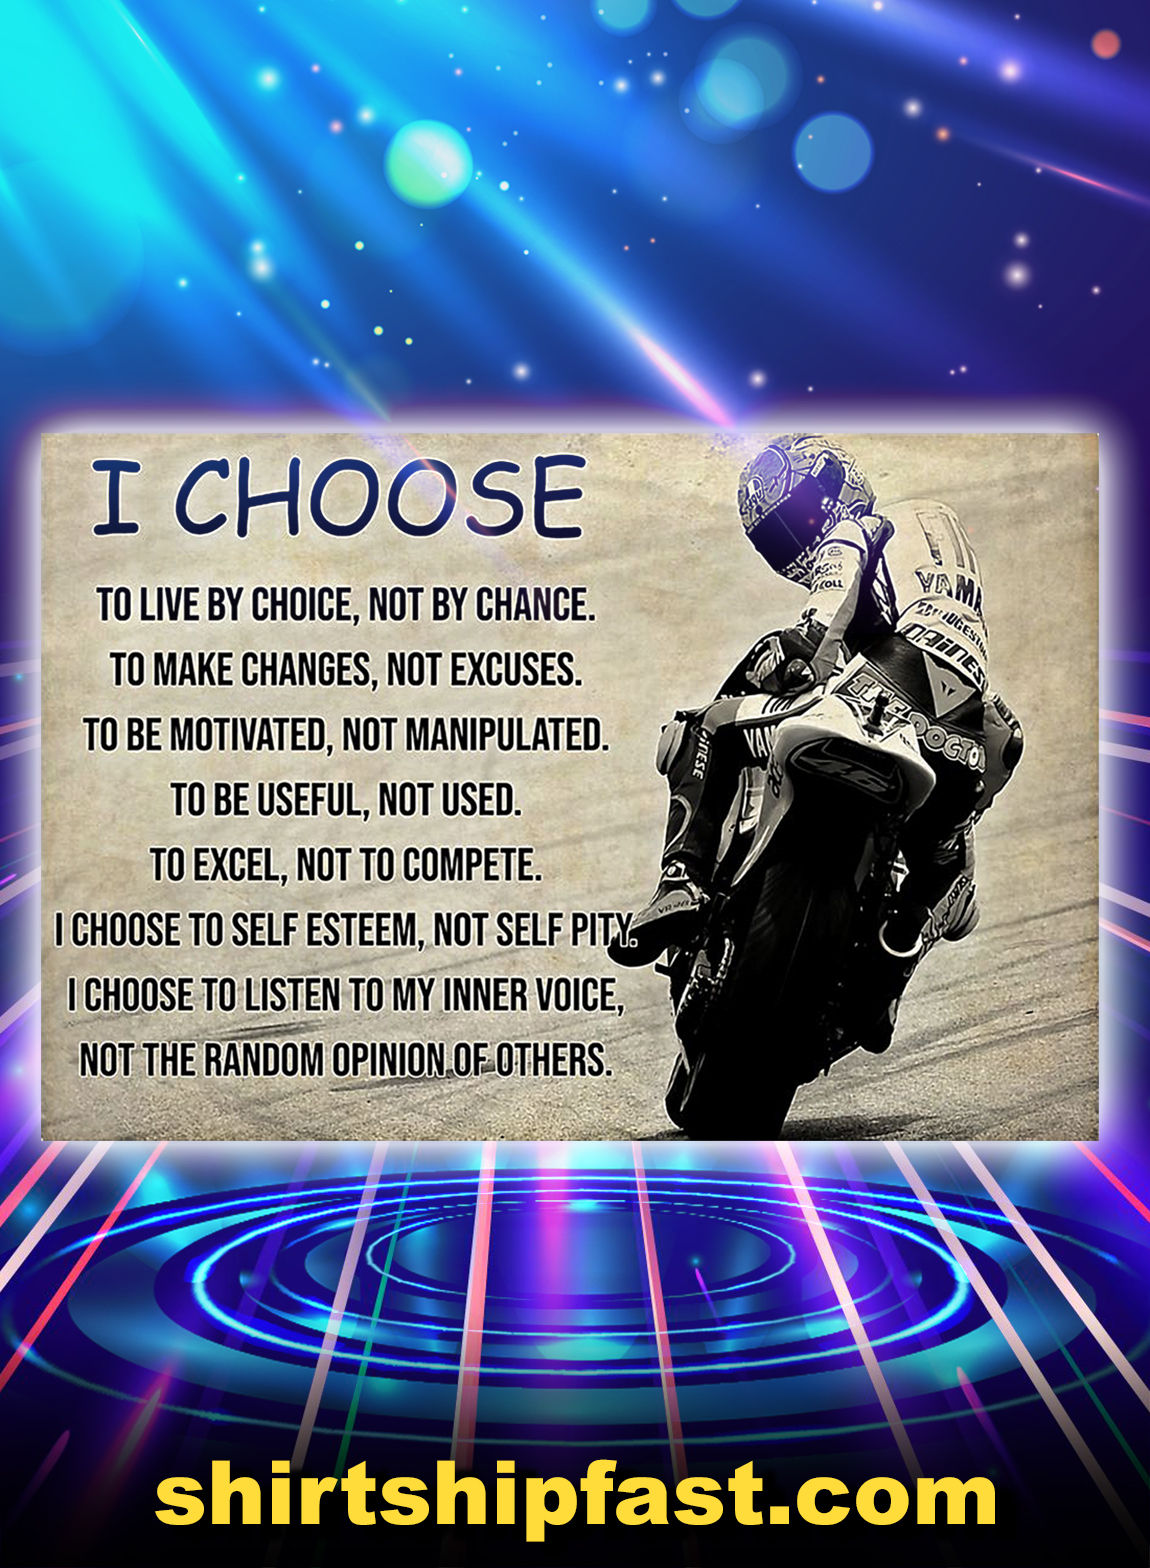 Motorcycle i choose to live by choice poster - A3